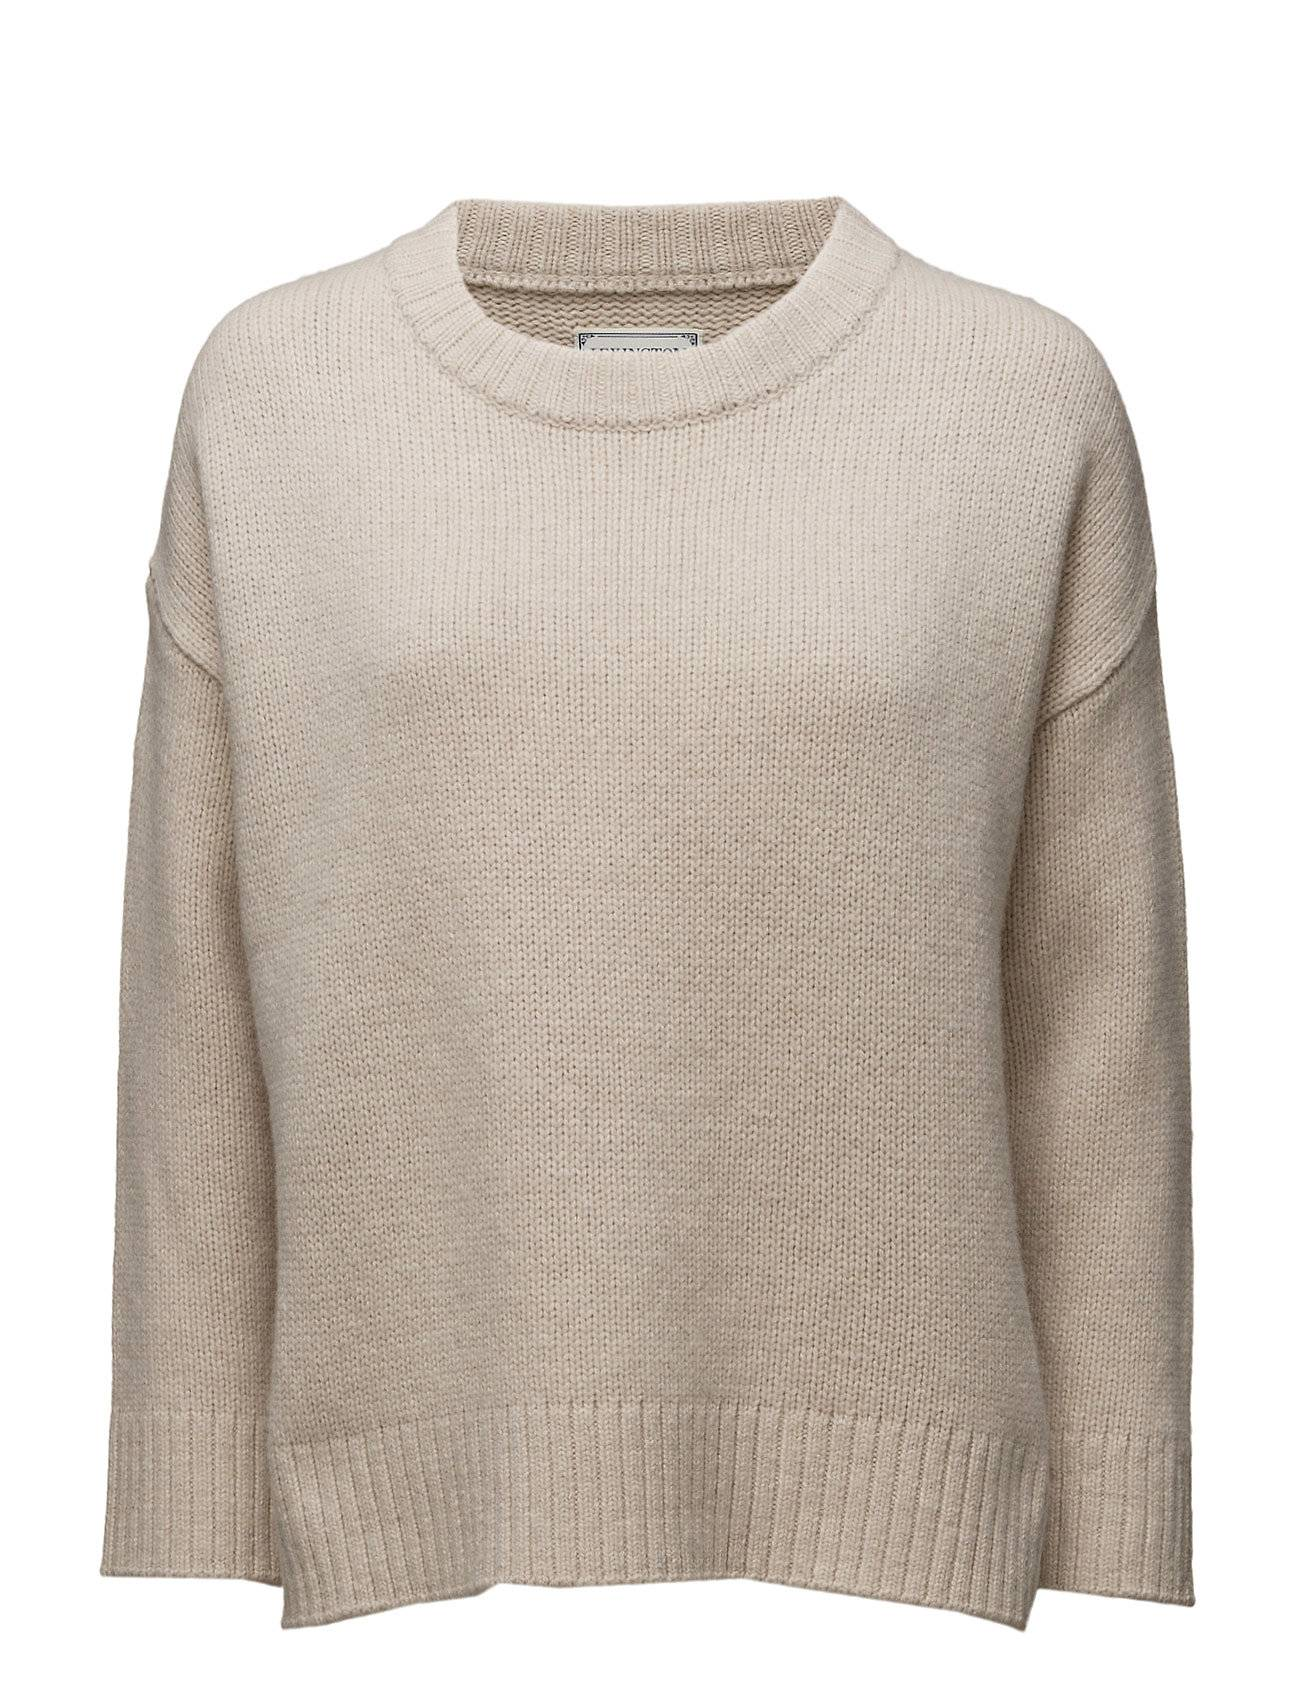 Lexington Clothing Amber Lee Sweater